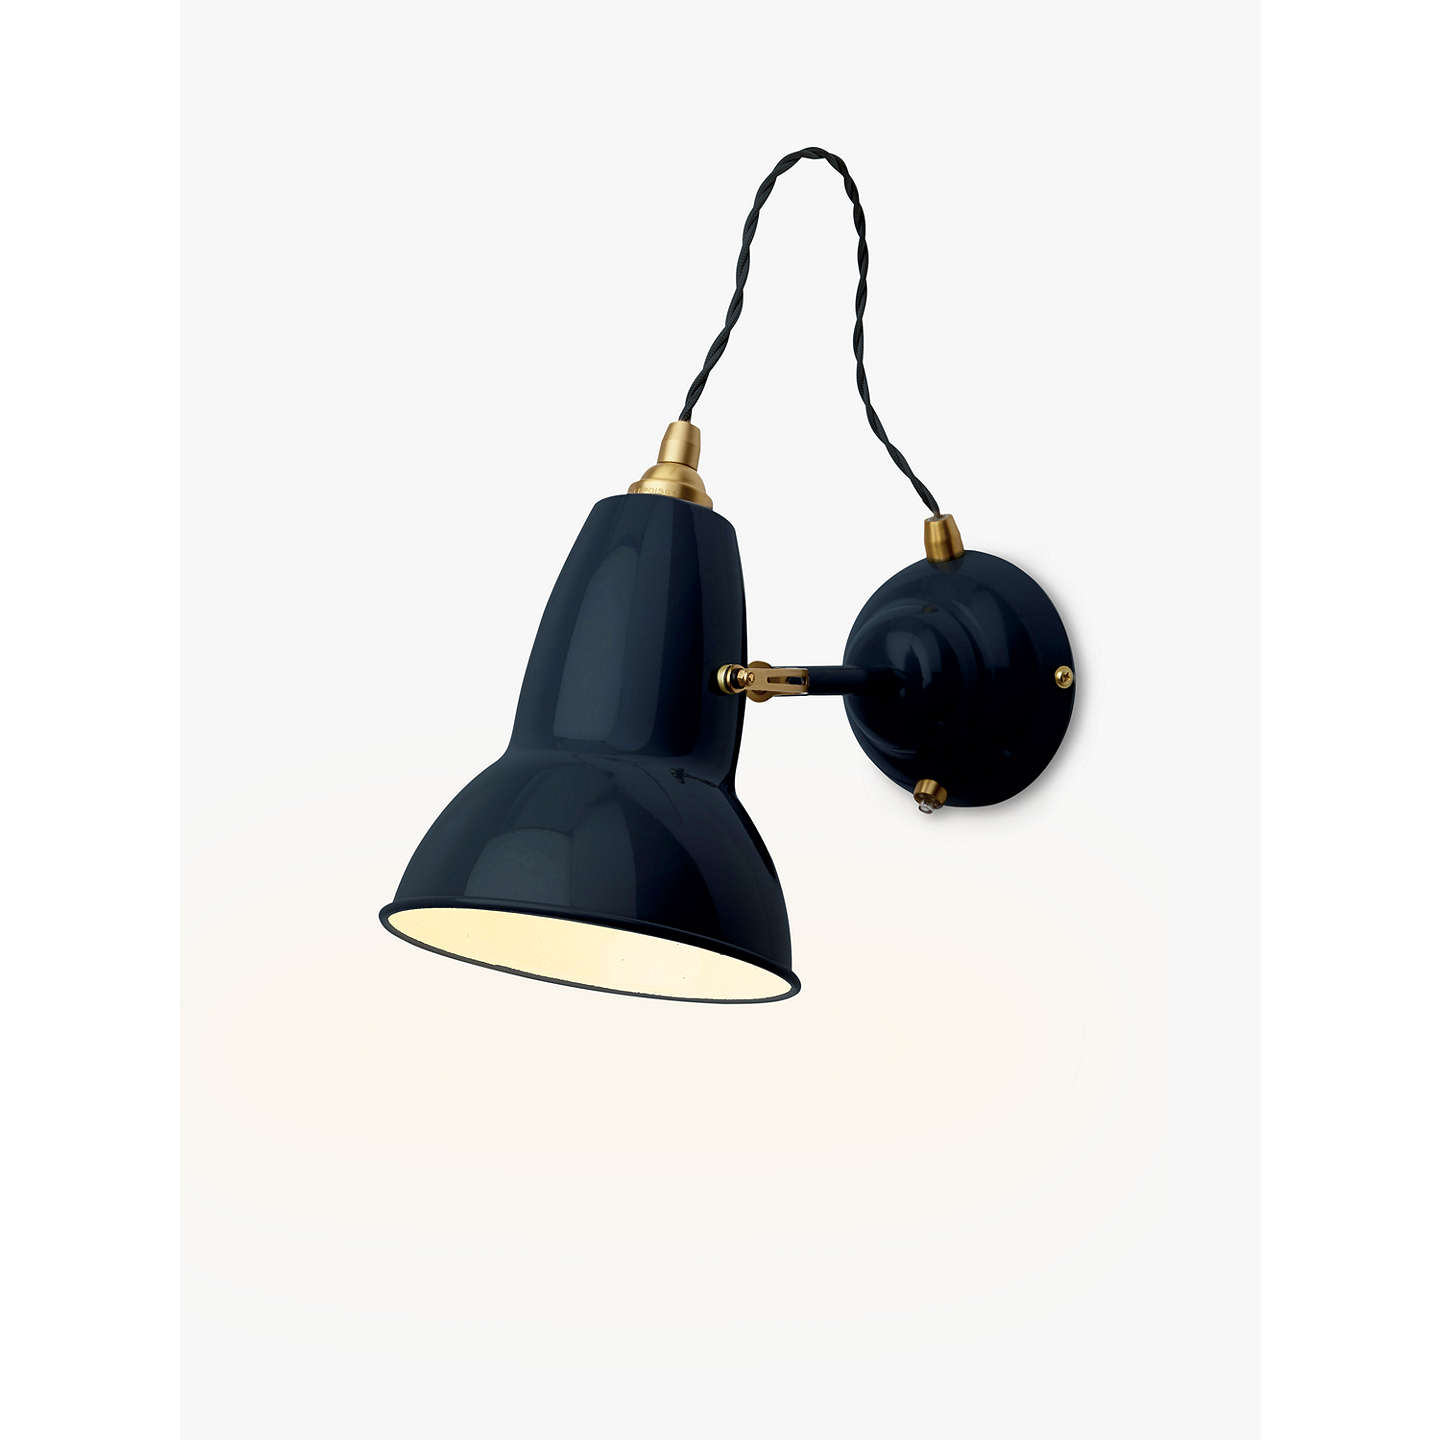 Anglepoise original 1227 brass wall light ink at john lewis buyanglepoise original 1227 brass wall light ink online at johnlewis aloadofball Image collections